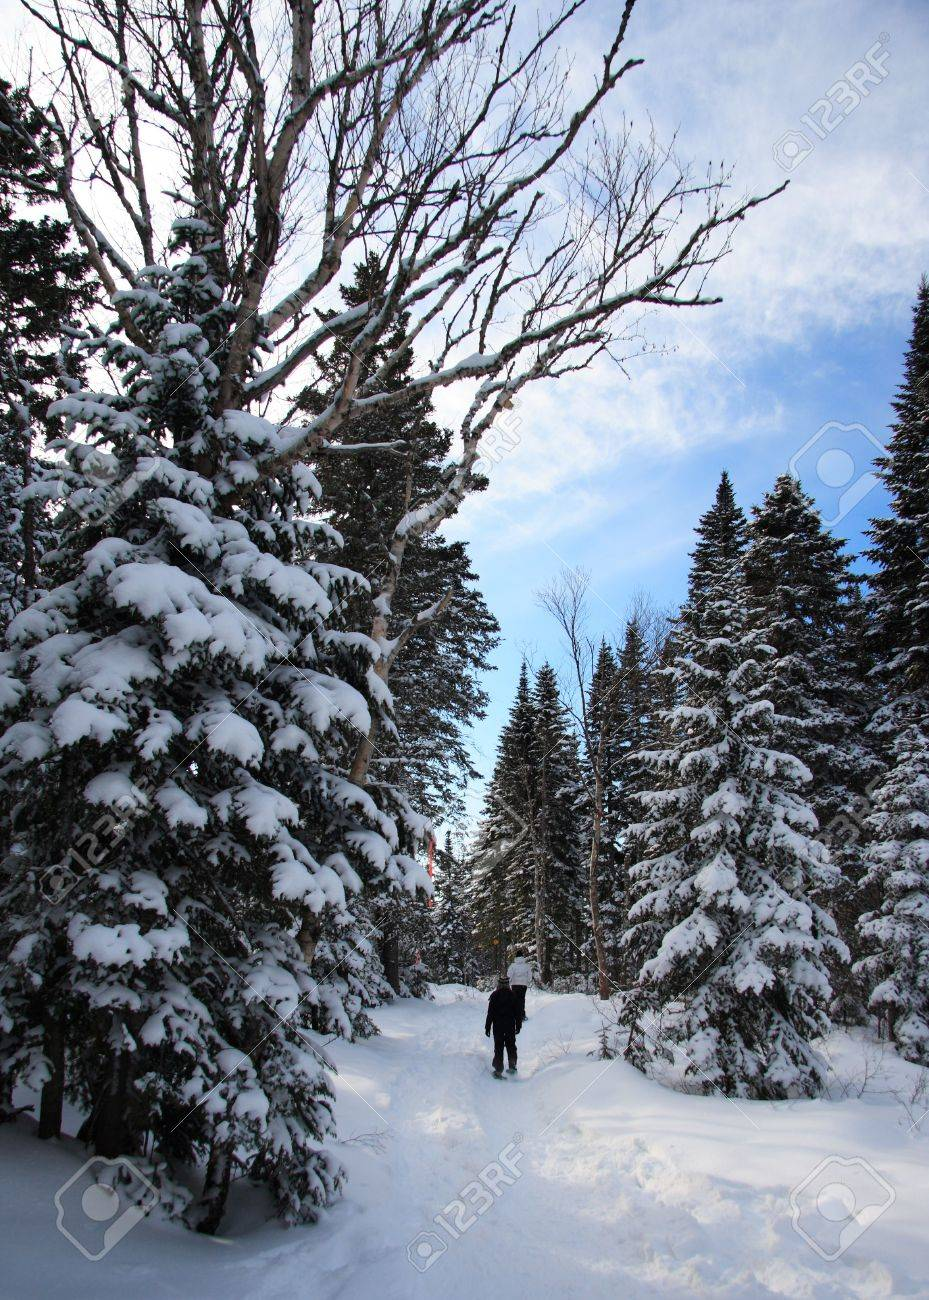 snowshoeing in pine forest near Baie Saint-Paul, Quebec, Canada Stock Photo - 4190422